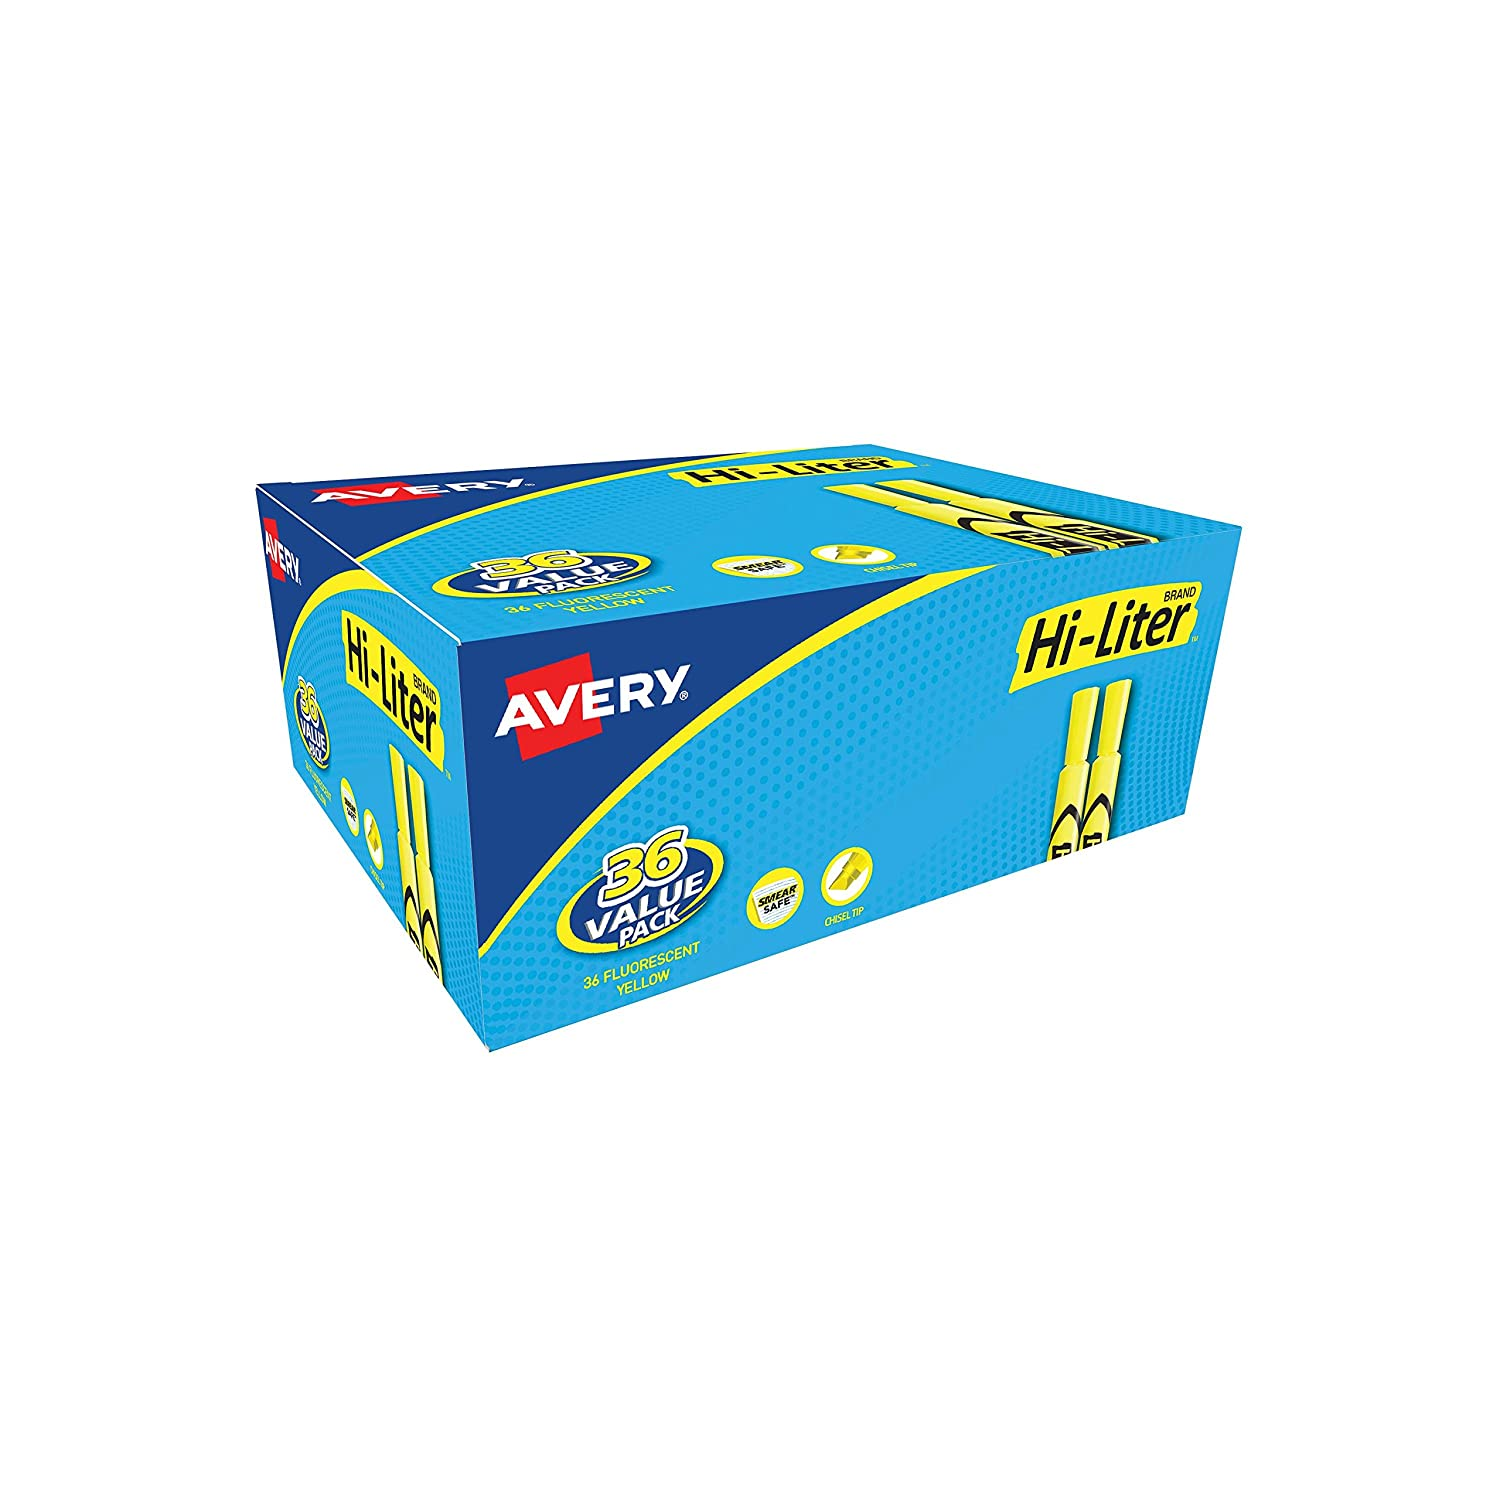 Avery Desk Style HI-LITER, Green, 12 Pack (24020)